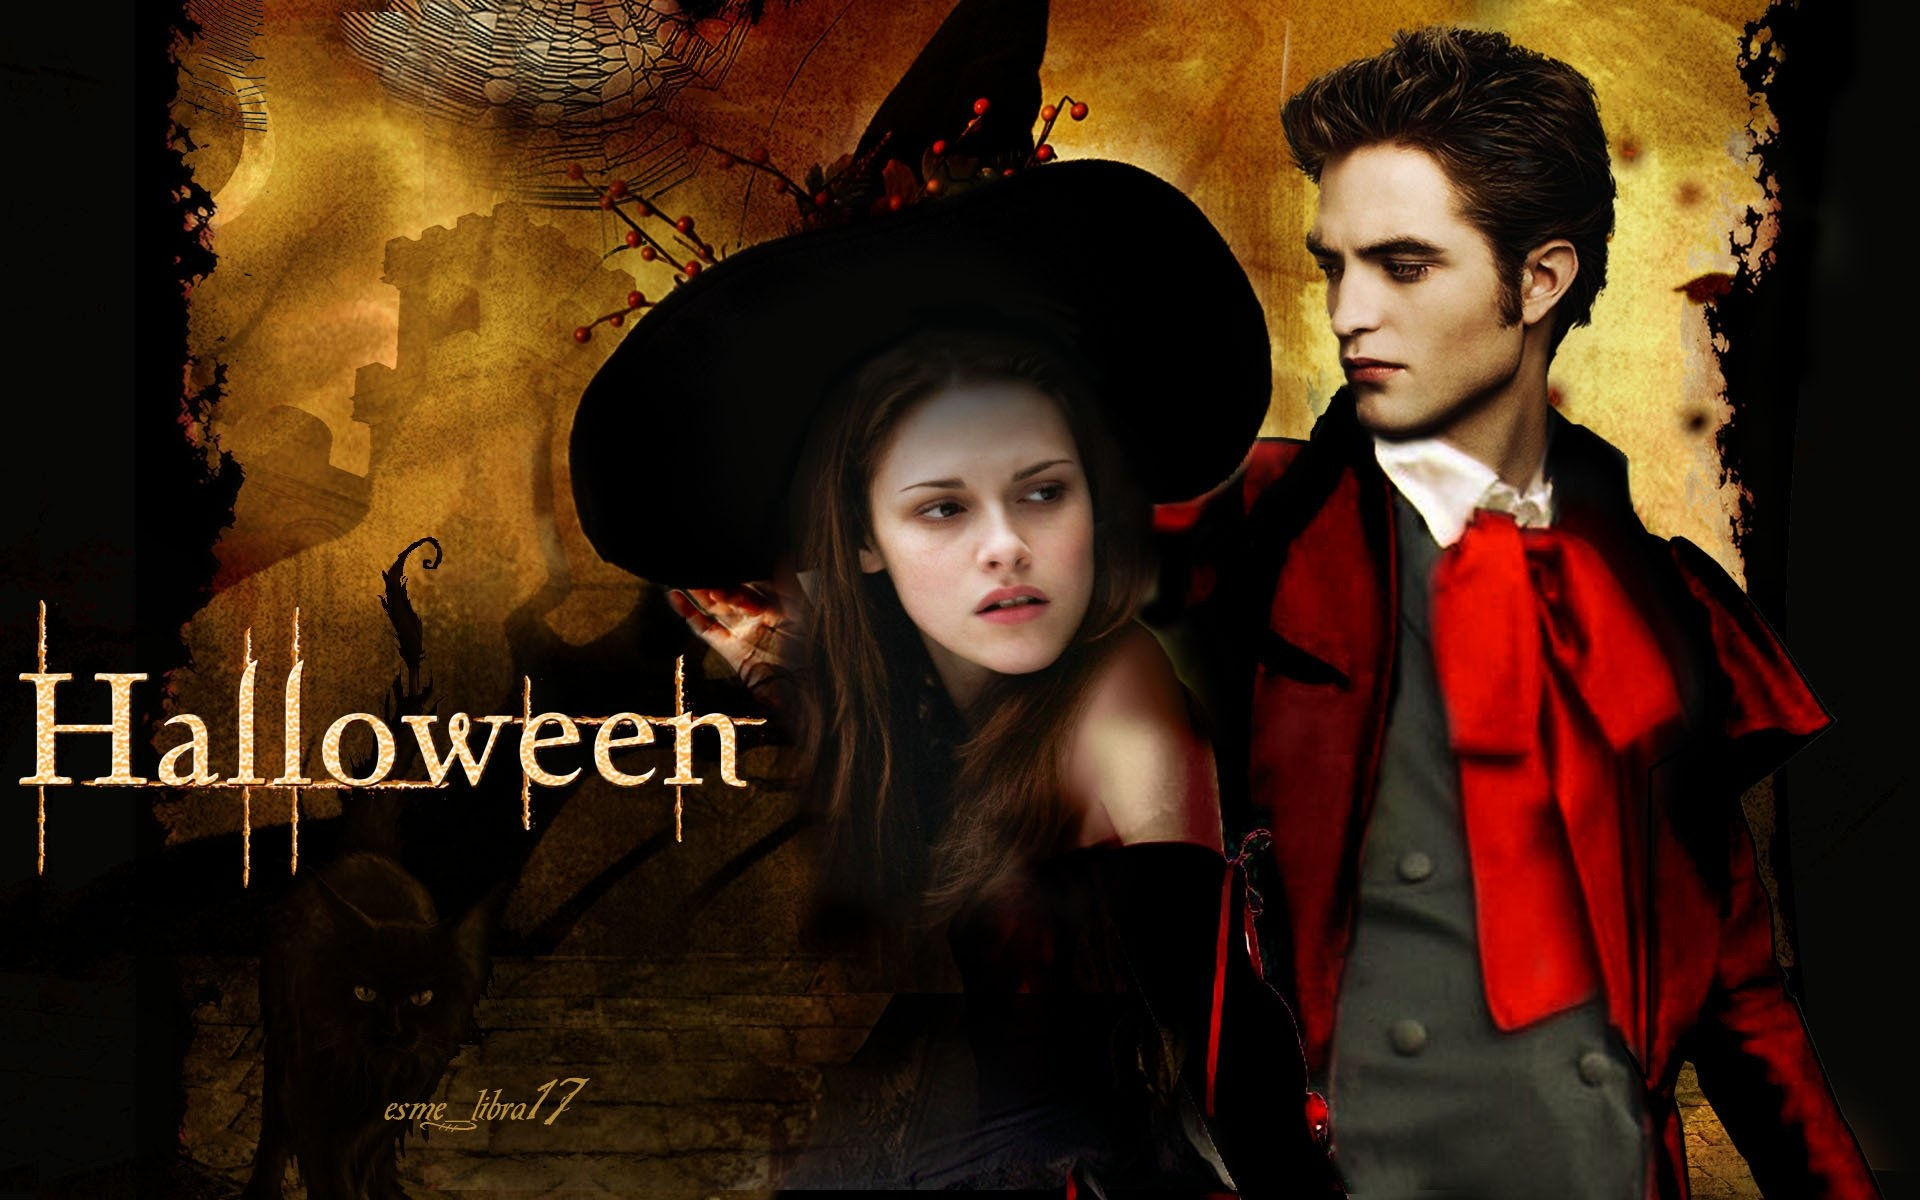 happy-halloween-twilight-cast-twilight-series-8815774-1920-1200 - сумреки обои